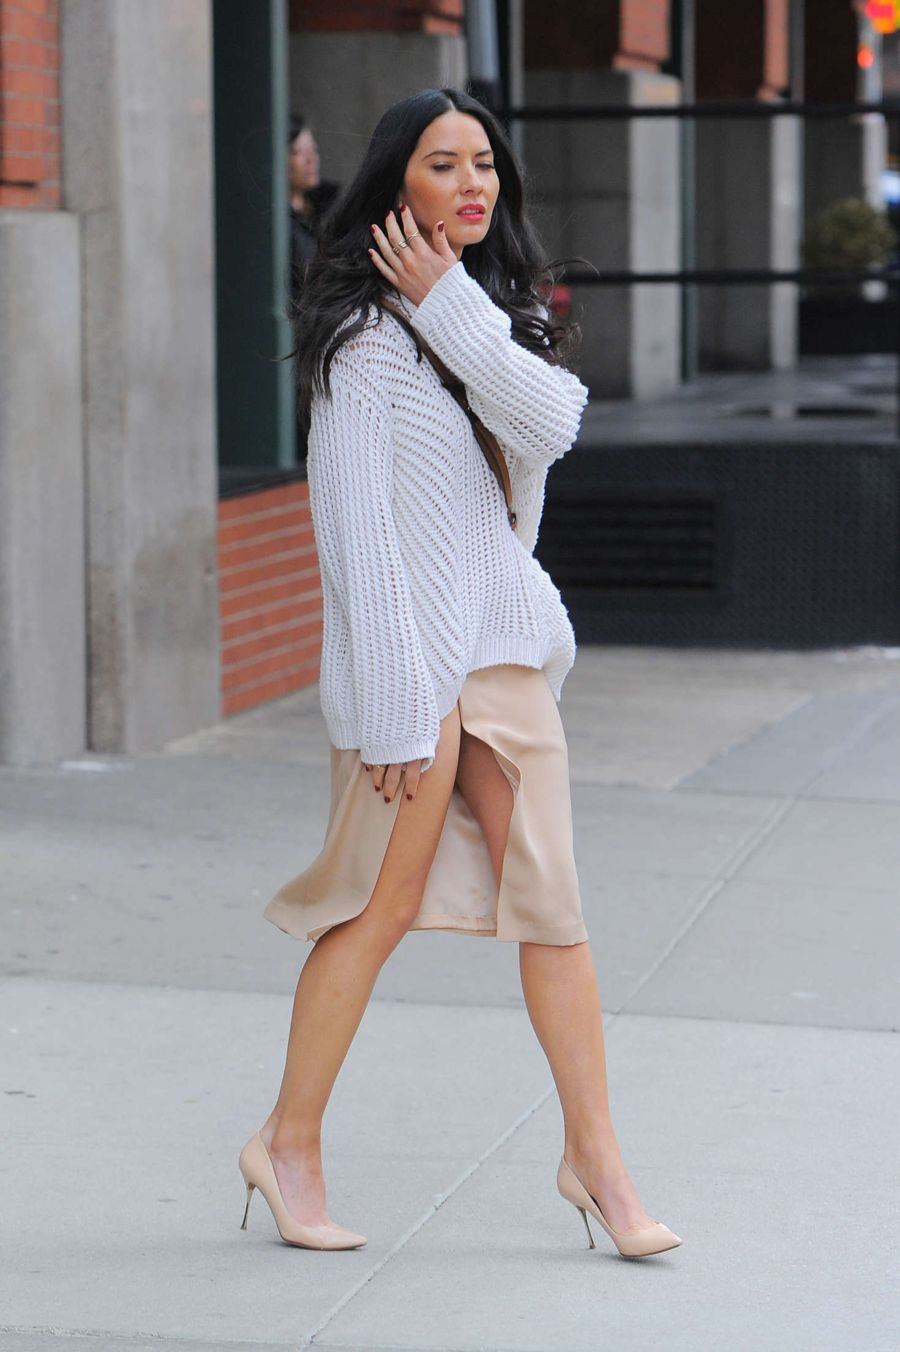 Olivia Munn out in Tribeca